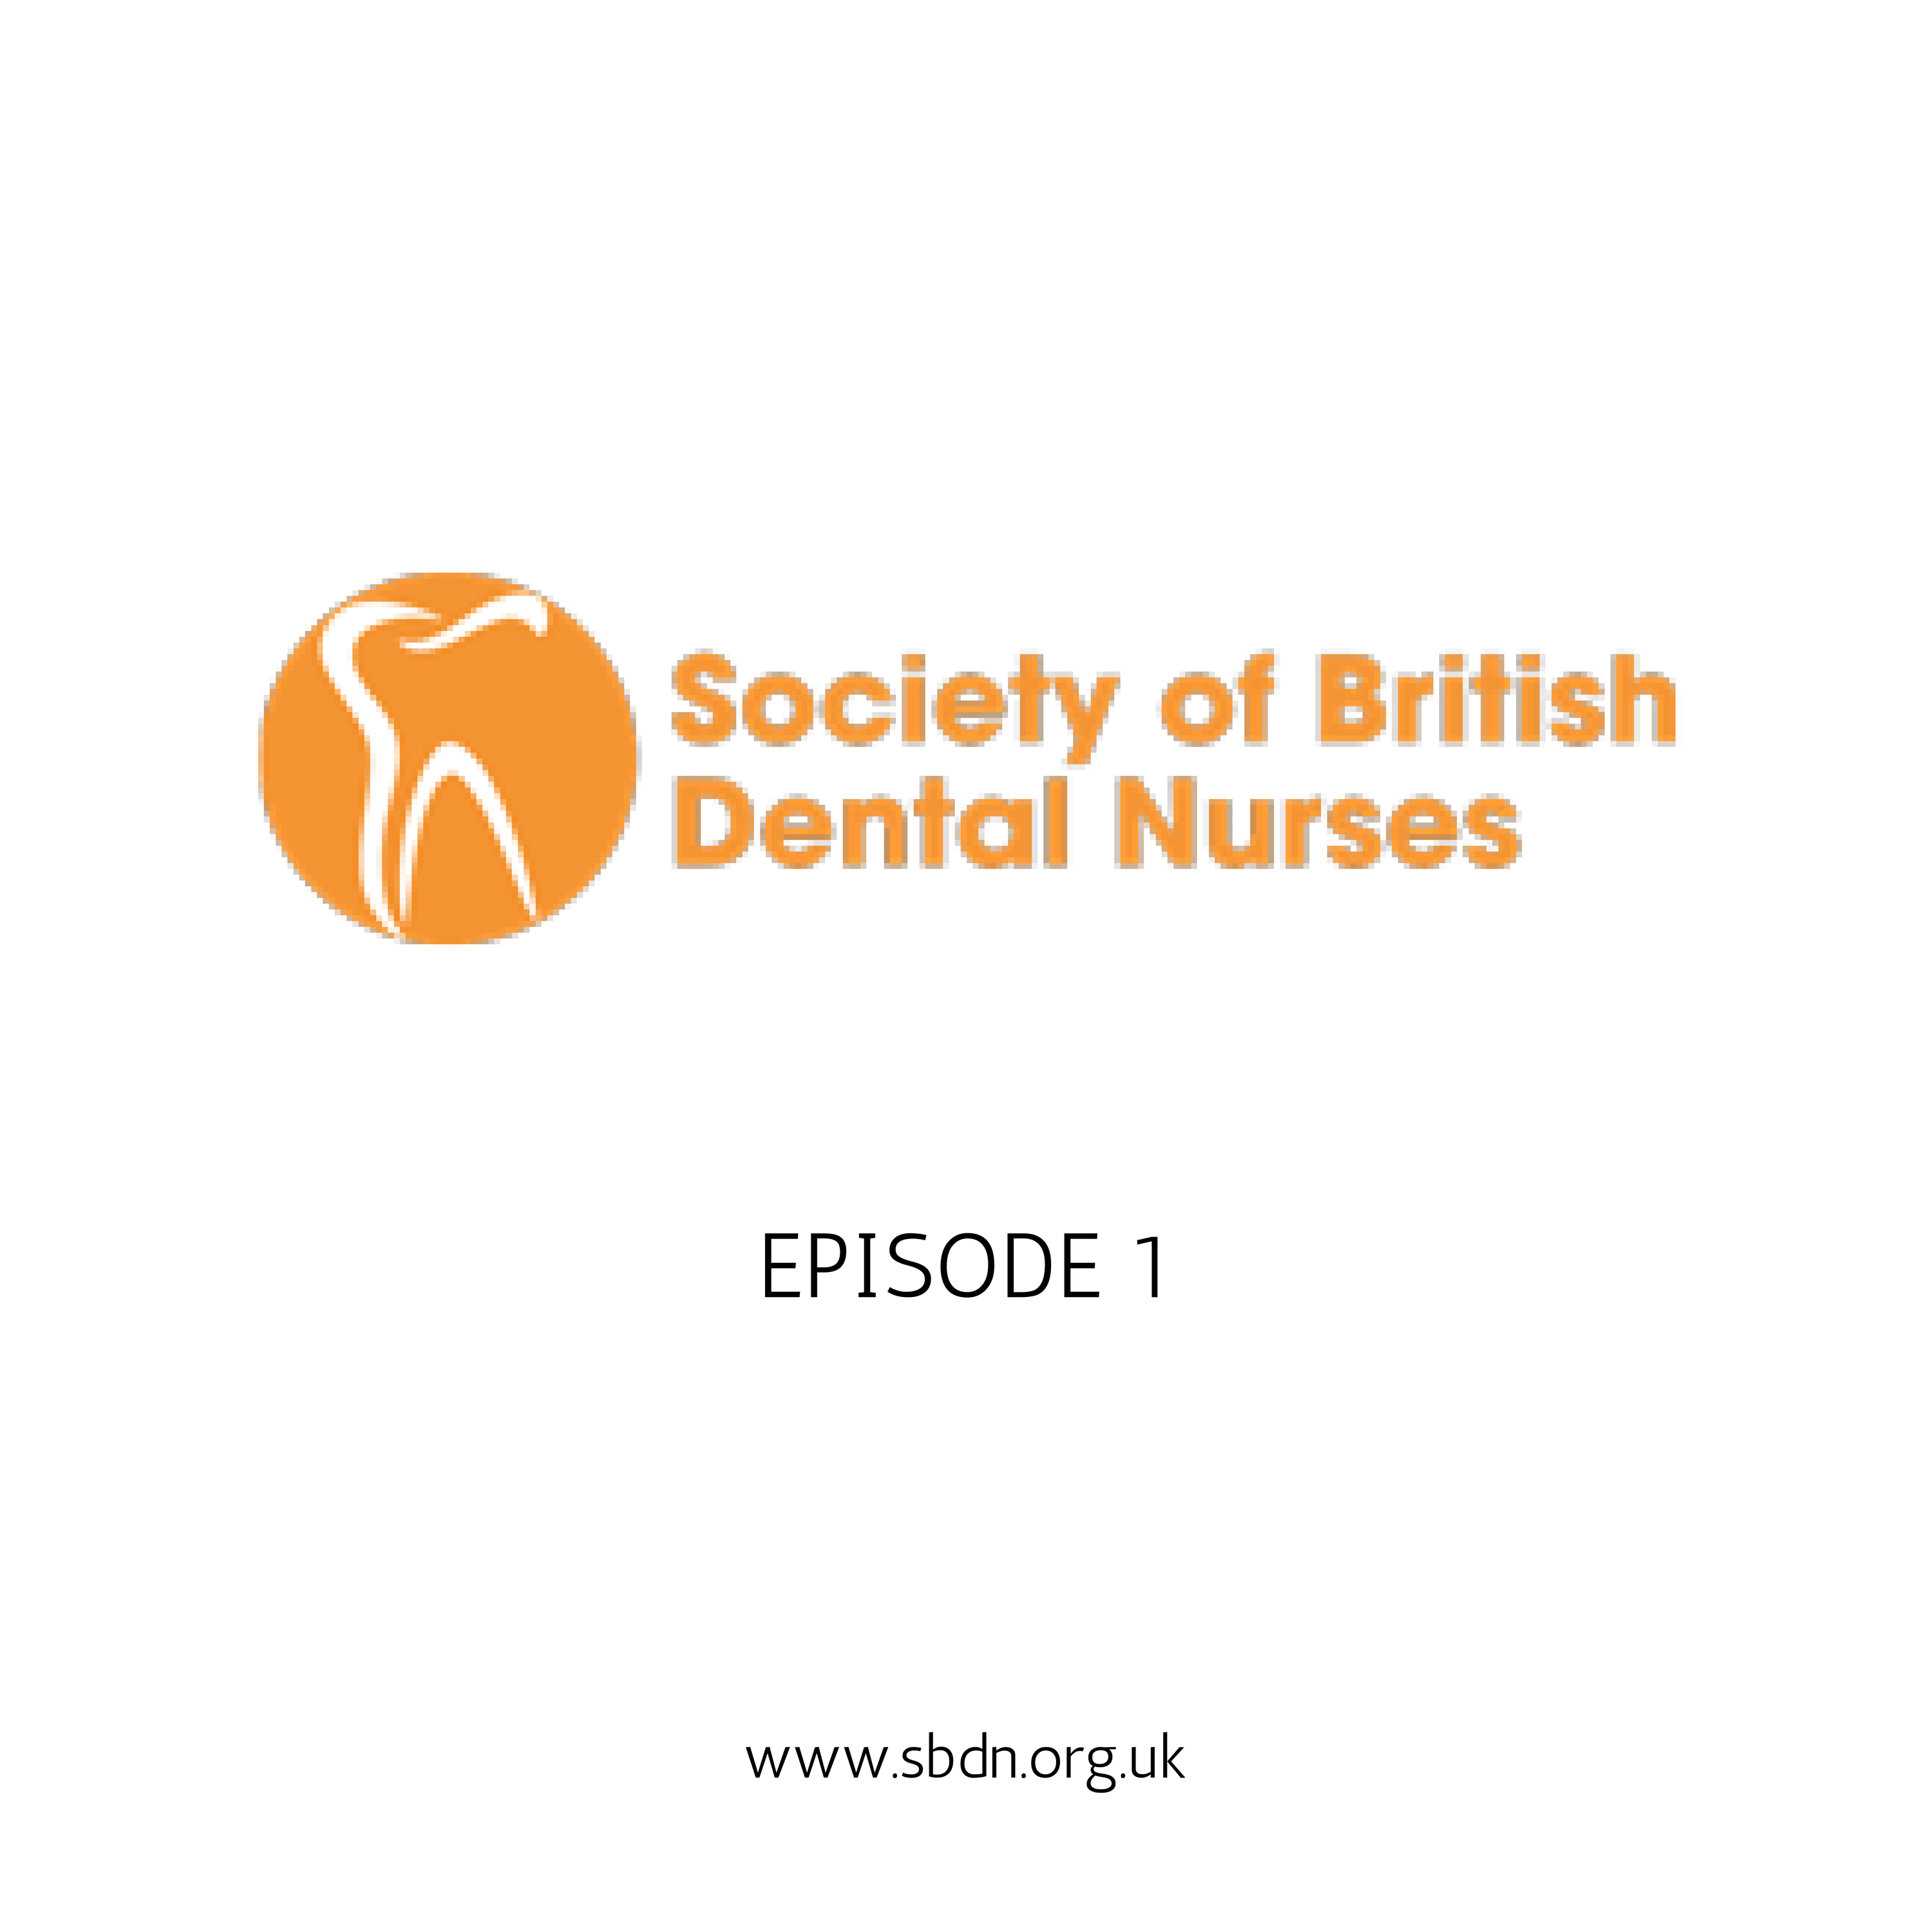 Learn about the Society of Britsh Dental Nurses